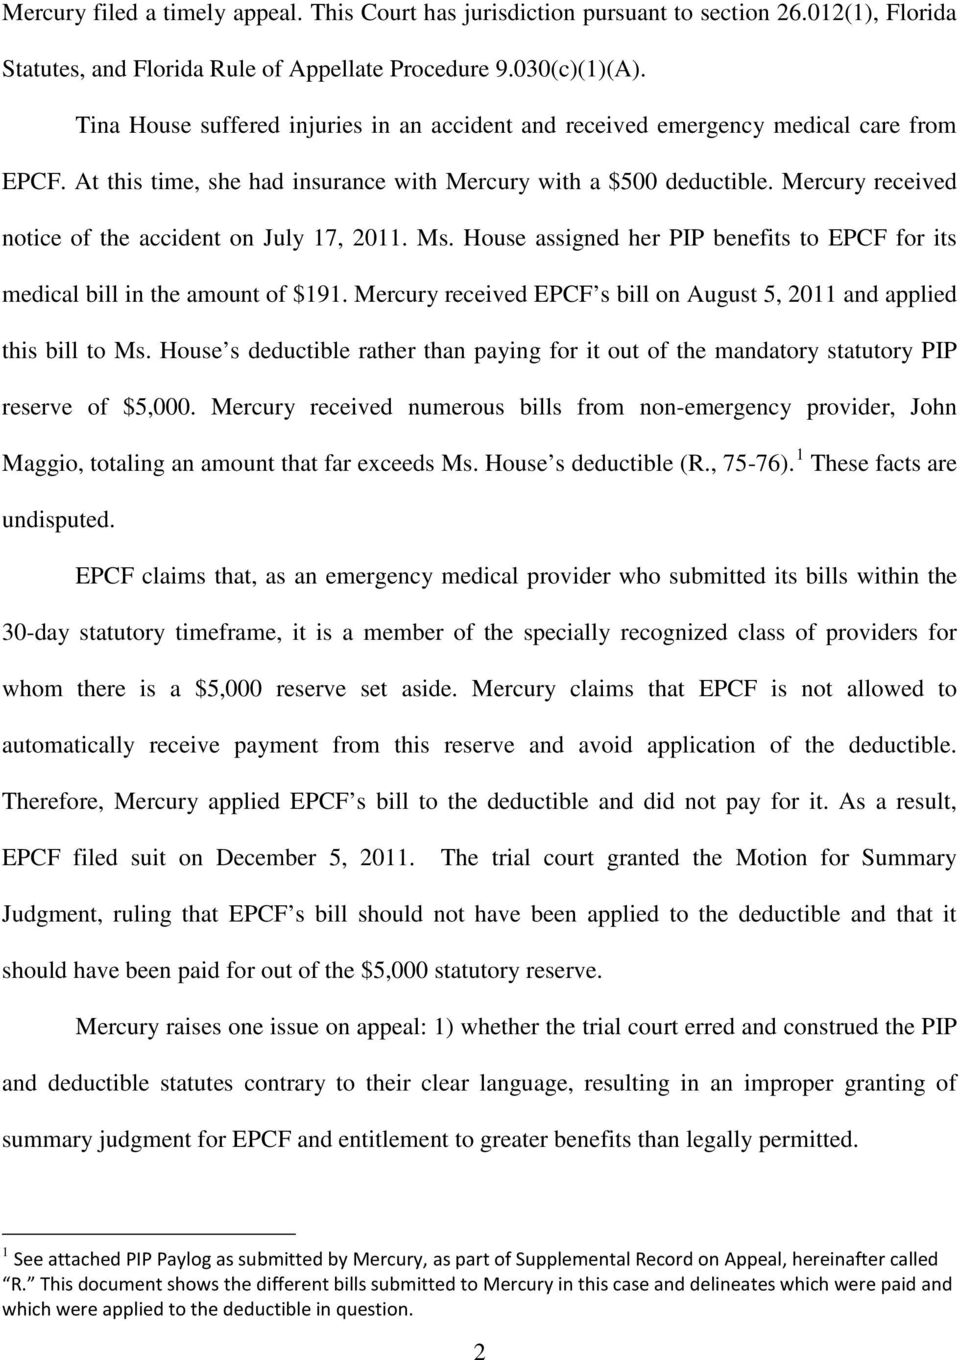 Mercury received notice of the accident on July 17, 2011. Ms. House assigned her PIP benefits to EPCF for its medical bill in the amount of $191.